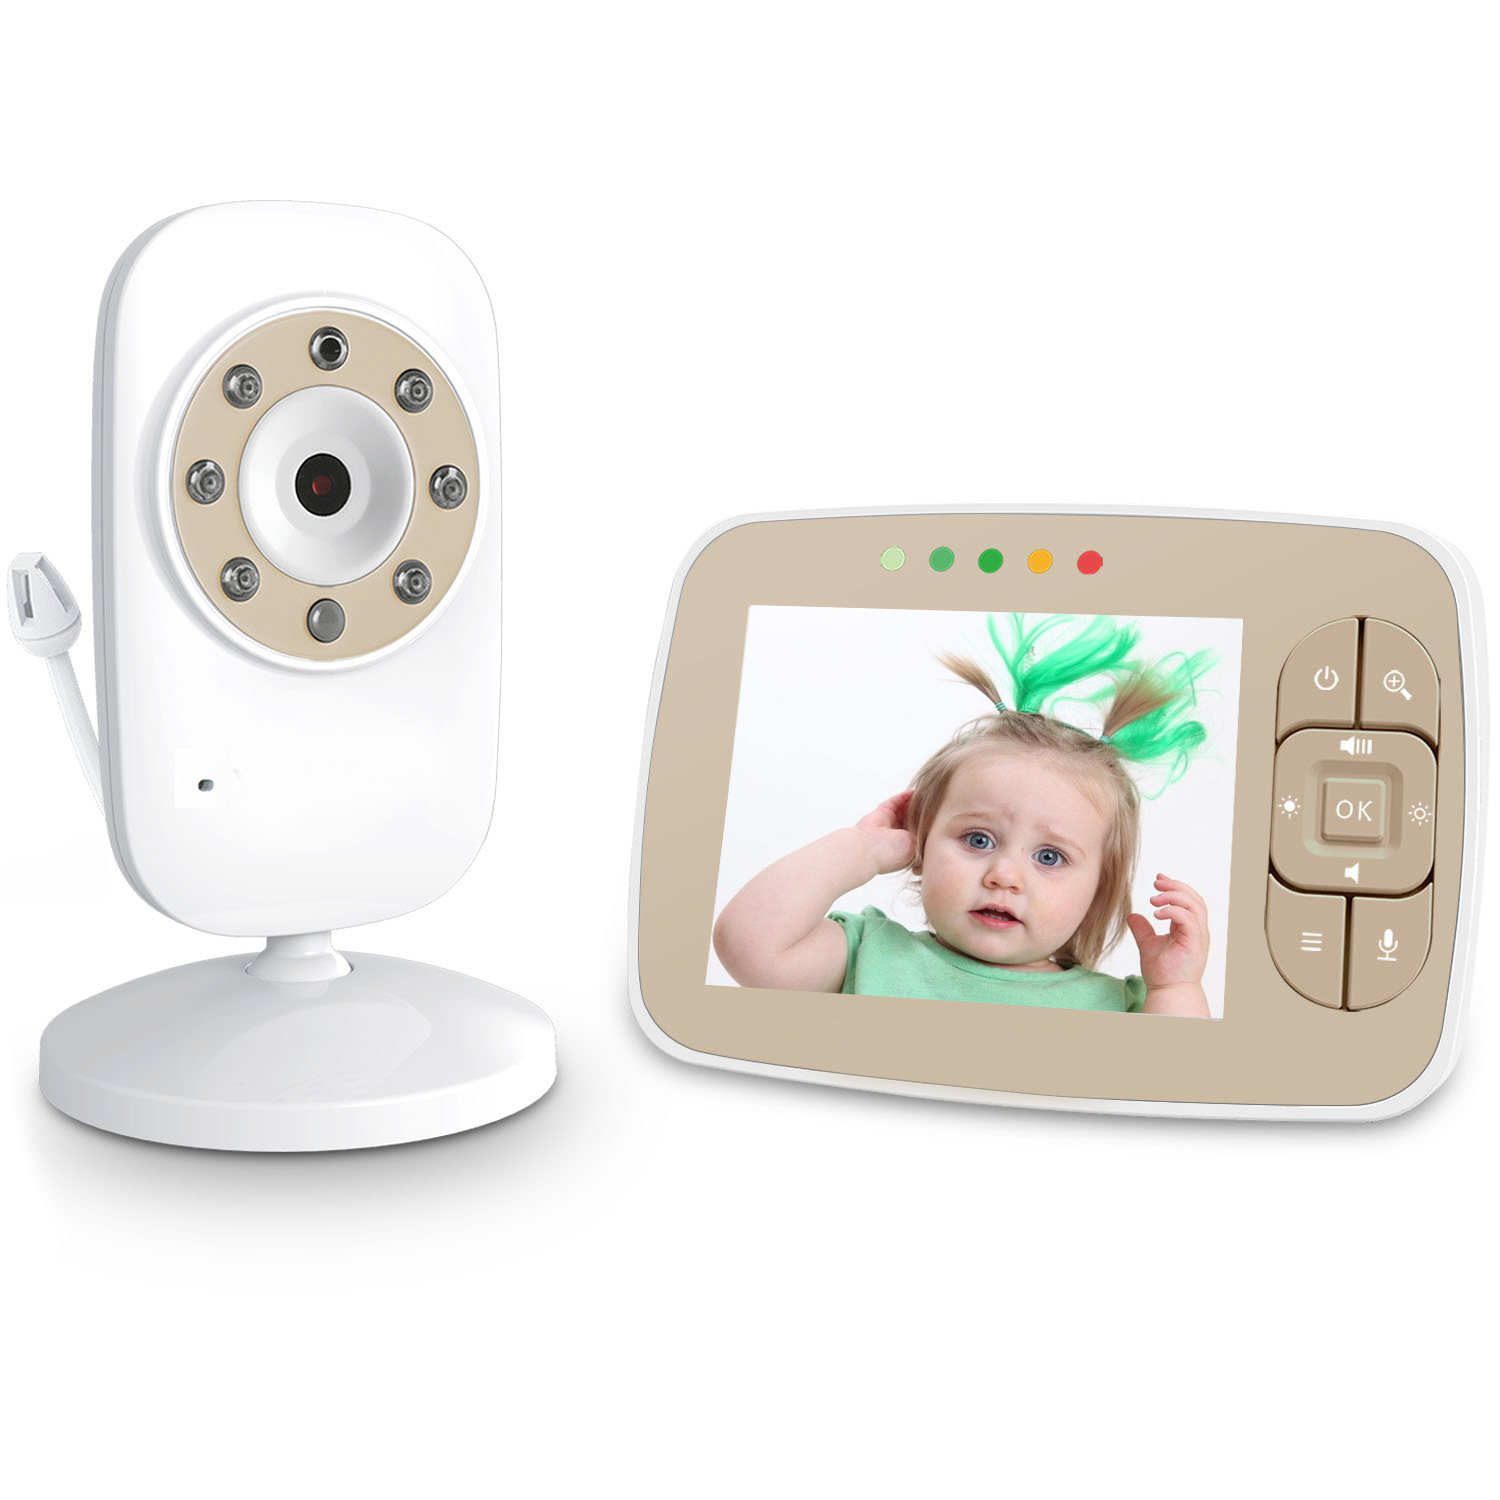 3.5 pollici 2.4G wireless video baby monitor baby monitor della macchina fotografica